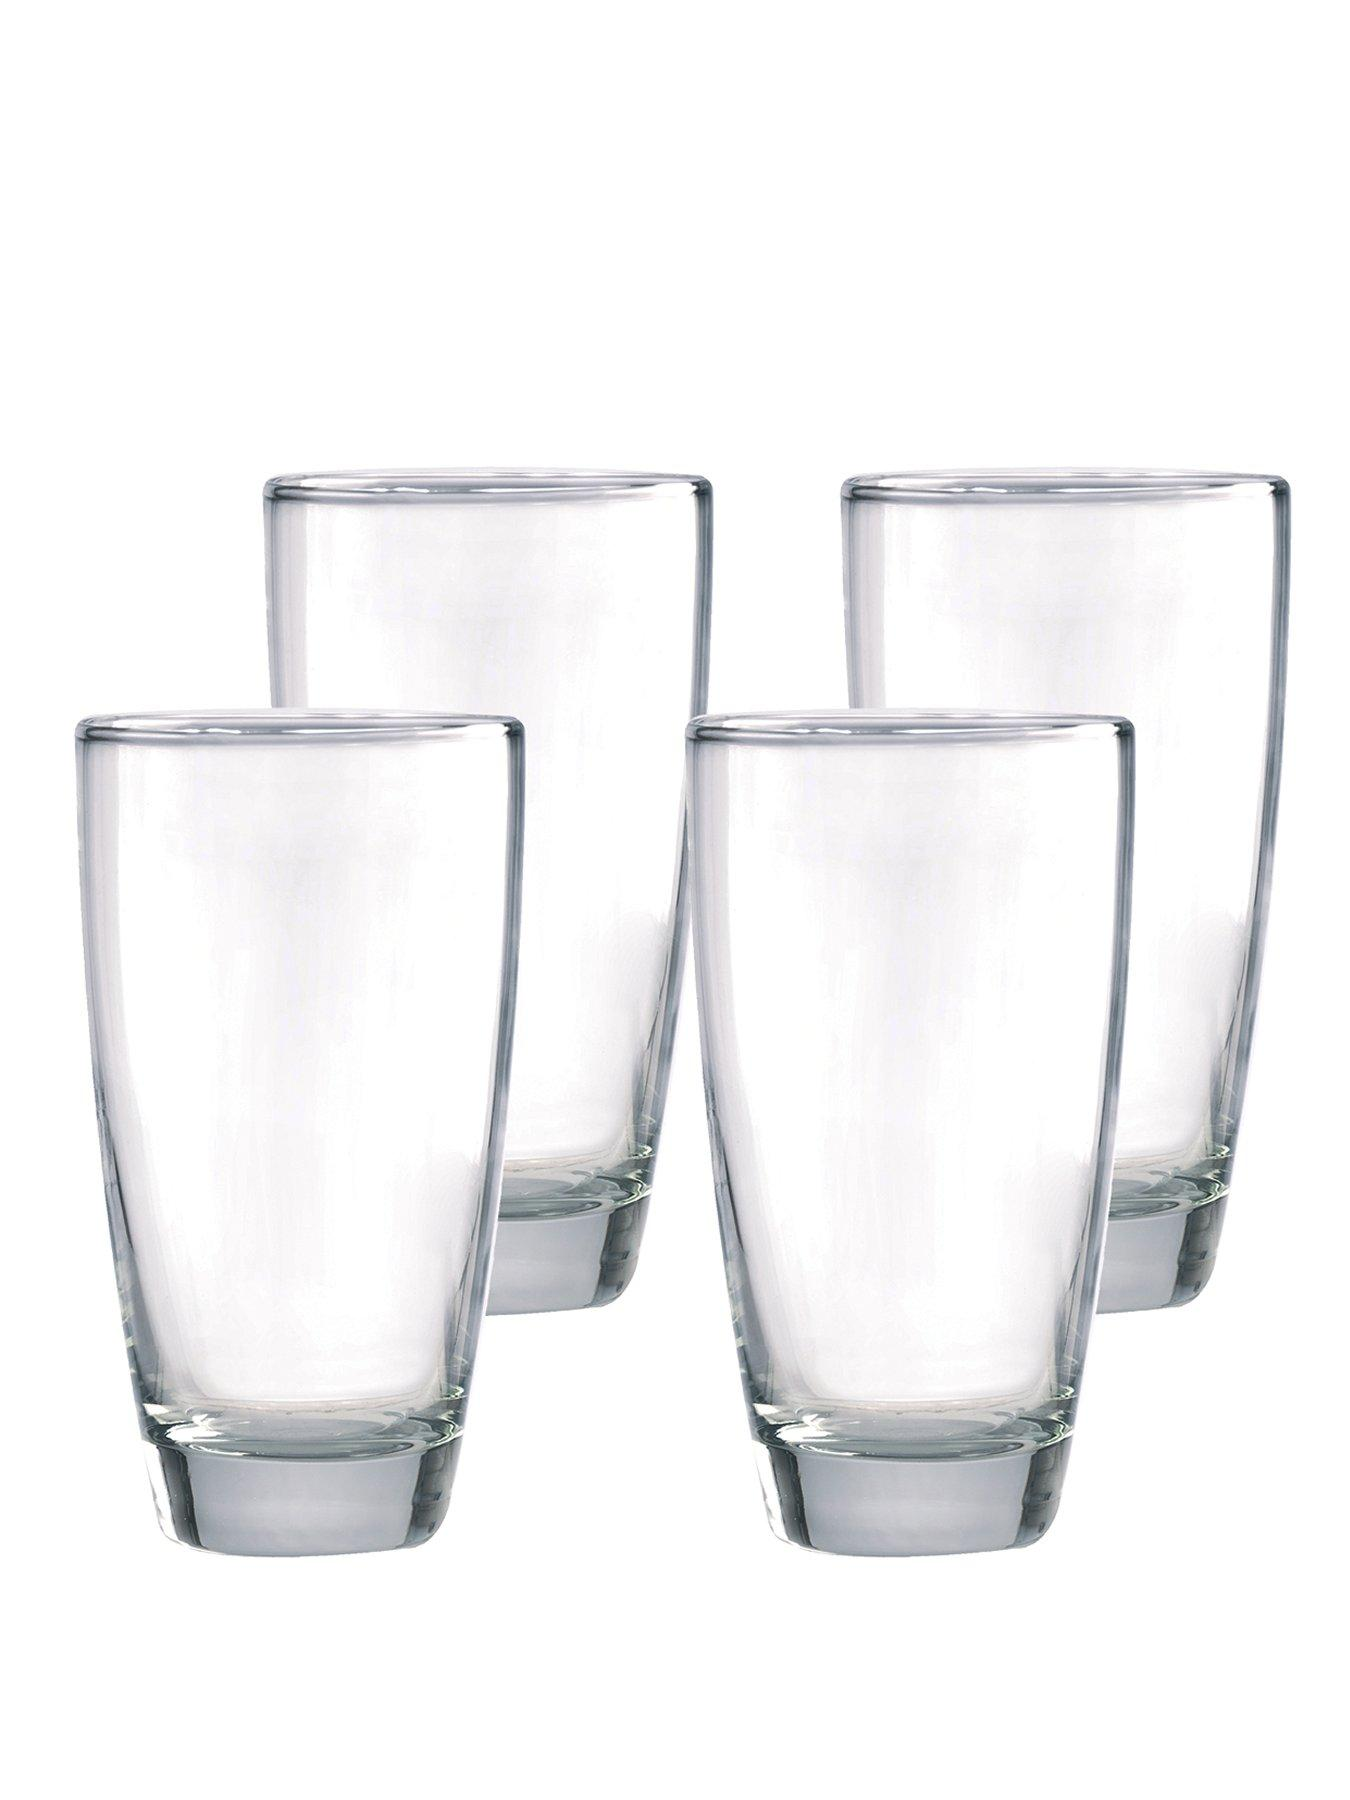 Mode 4 Hi Ball Glasses